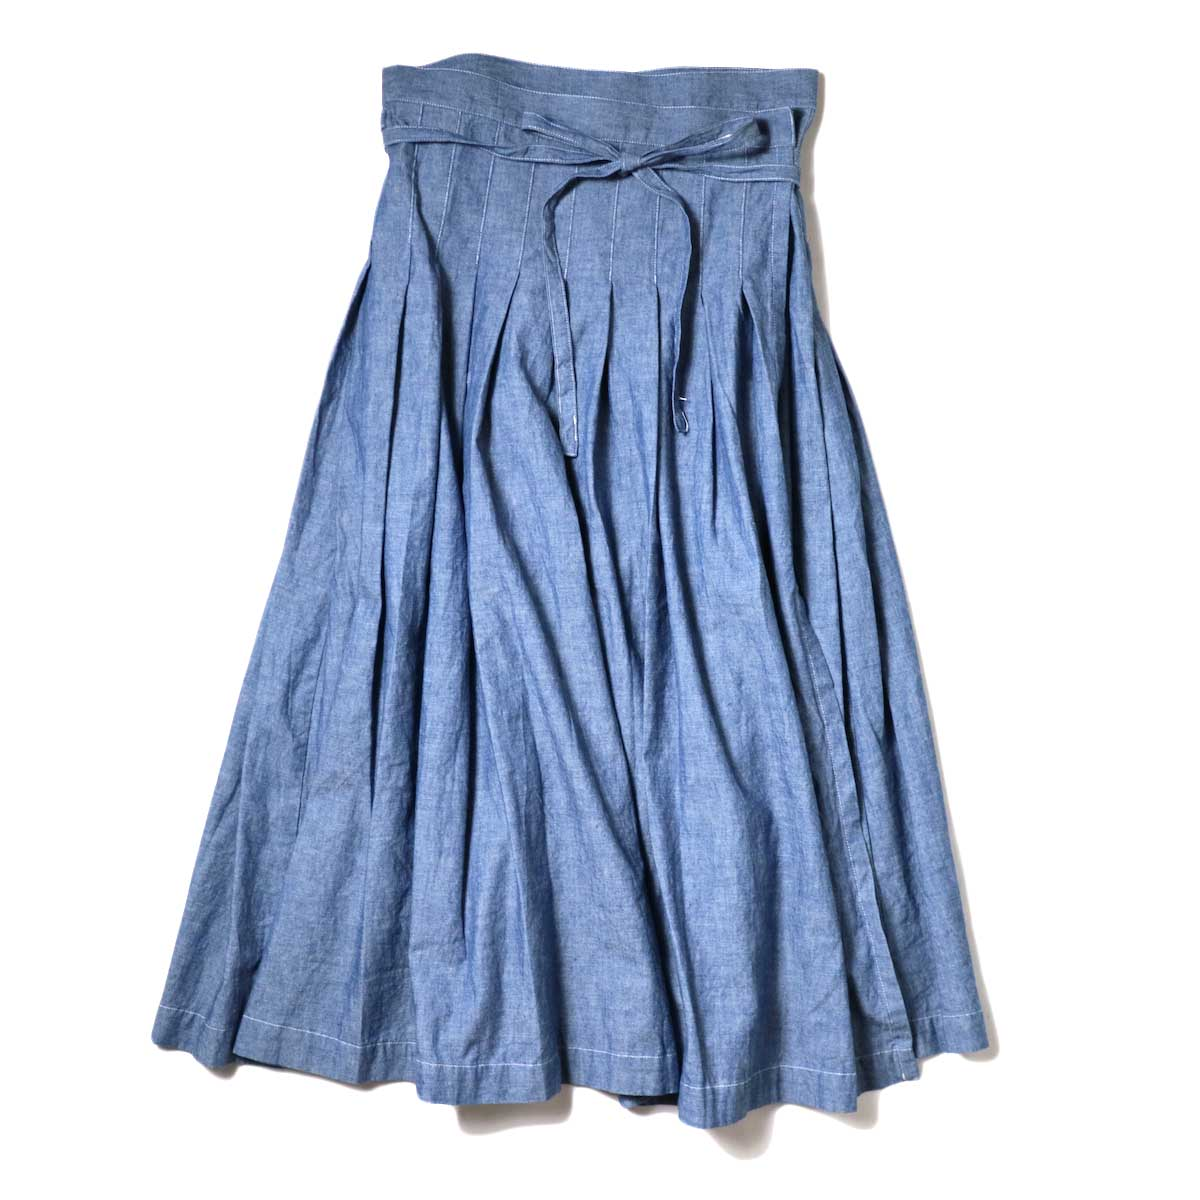 ARMEN / Pleated Wrap Skirt (Blue Chambray)